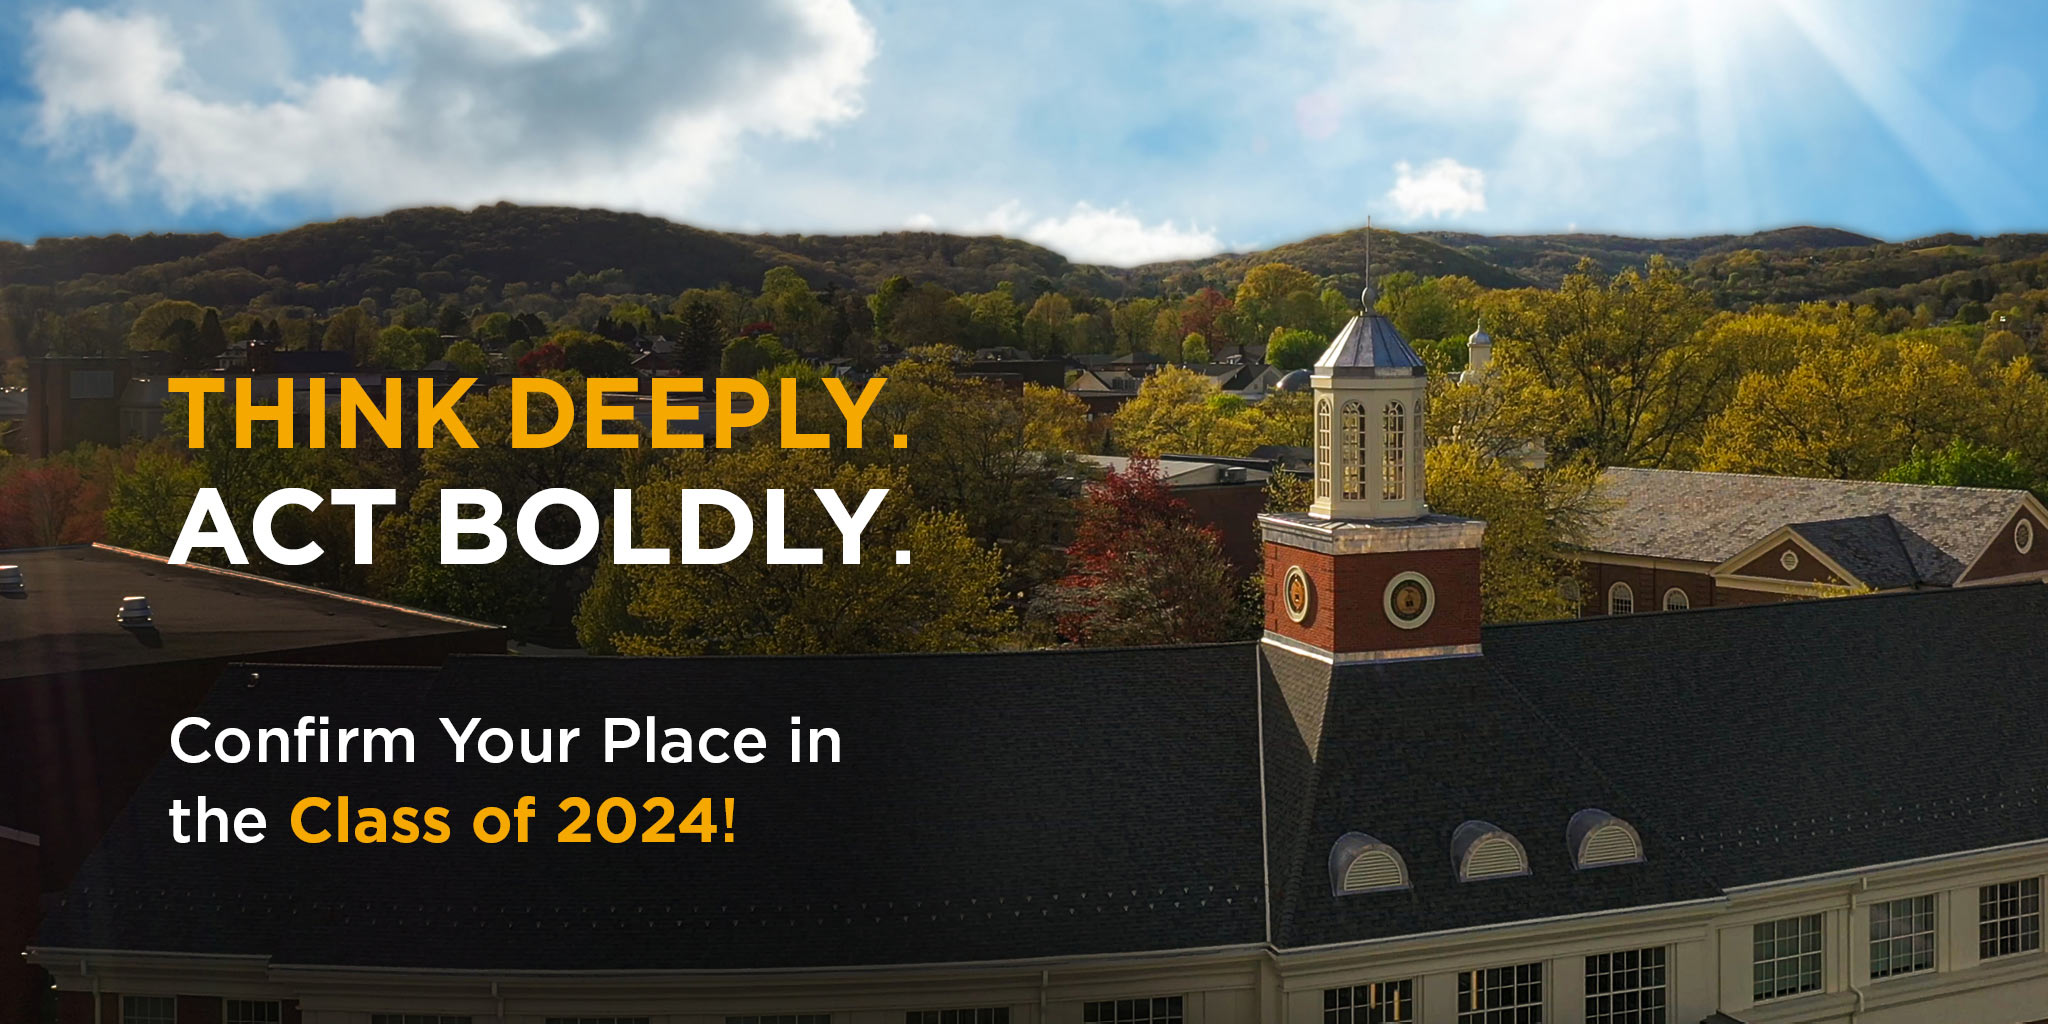 Confirm your place in the class of 2024